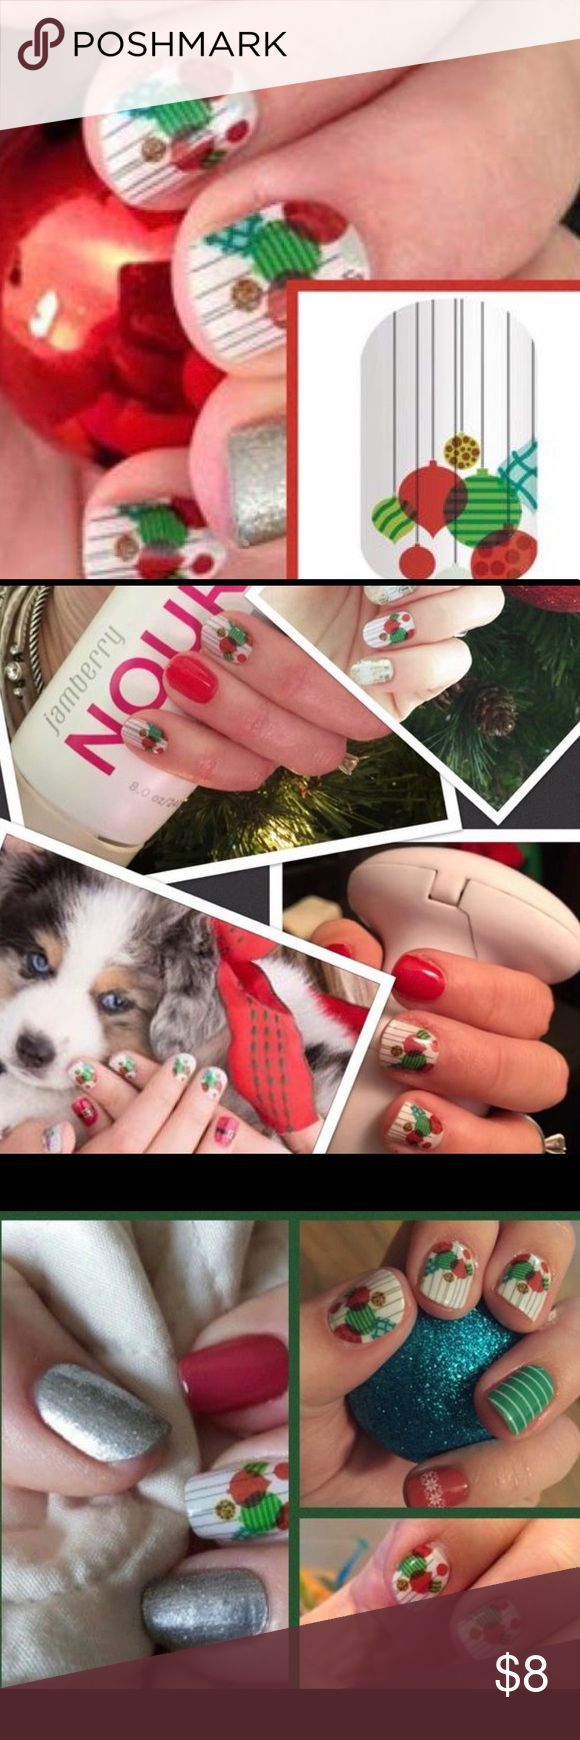 Jamberry nail wrap seasons bright Christmas Buy 6 or more 1/2 sheets and each sheet will be discounted to $5 each.  This is for a 1/2 sheet of the nail wrap features in the first picture. Additional pictures are to show u how they look mixed.  1/2 sheet purchases allow u to have more versatility in making bundles and get more designs on a budget.  Each 1/2 sheet gives 1 manicure 1 pedicure and 4-8 accent sheets. made in USA NON TOXIC VEGAN jamberry Makeup